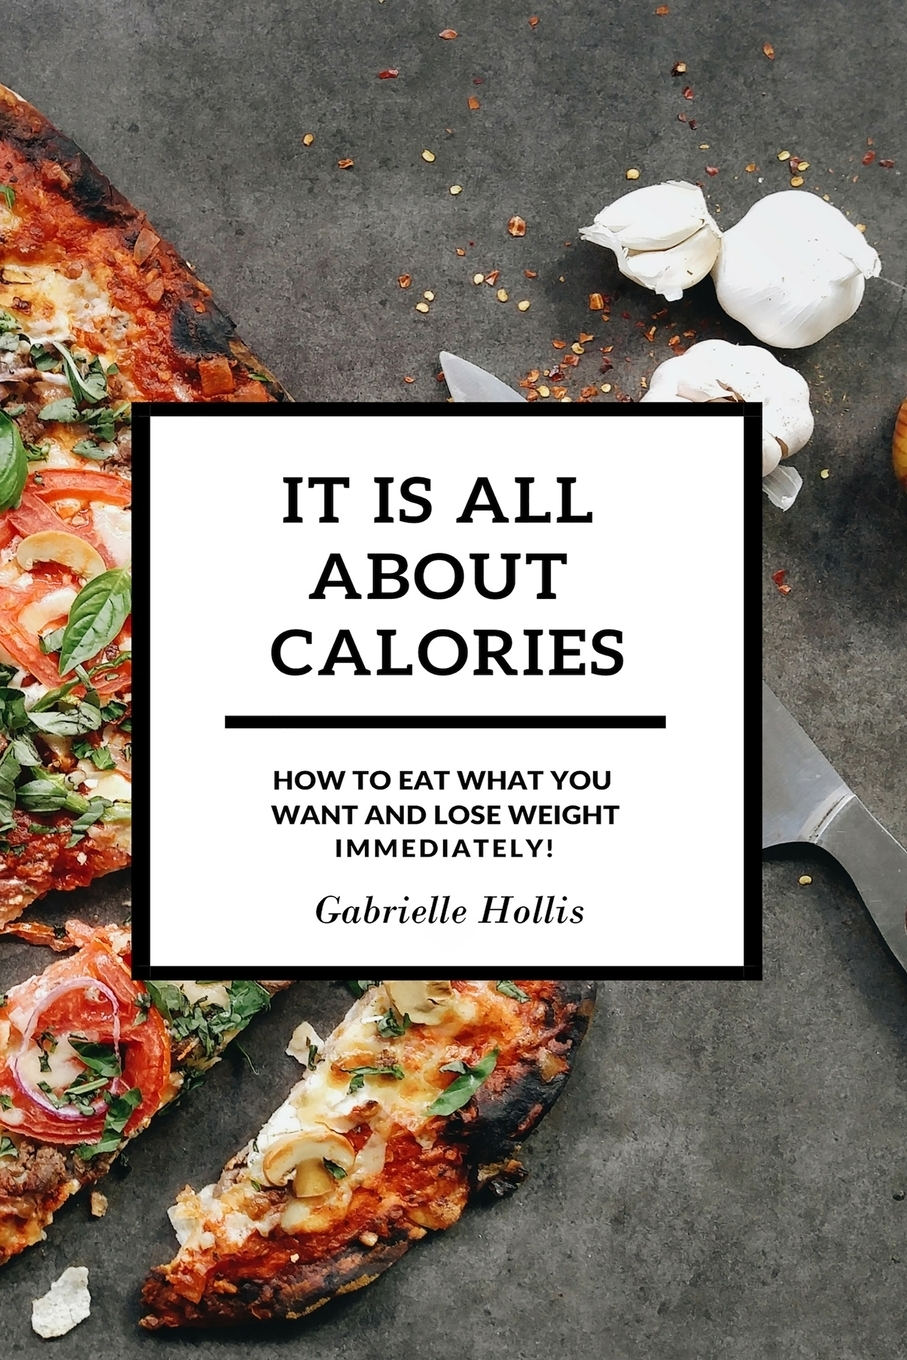 Gabrielle Hollis It Is All About Calories. How to Eat What You Want and Lose Weight Immediately hidden dangers in what we eat and drink